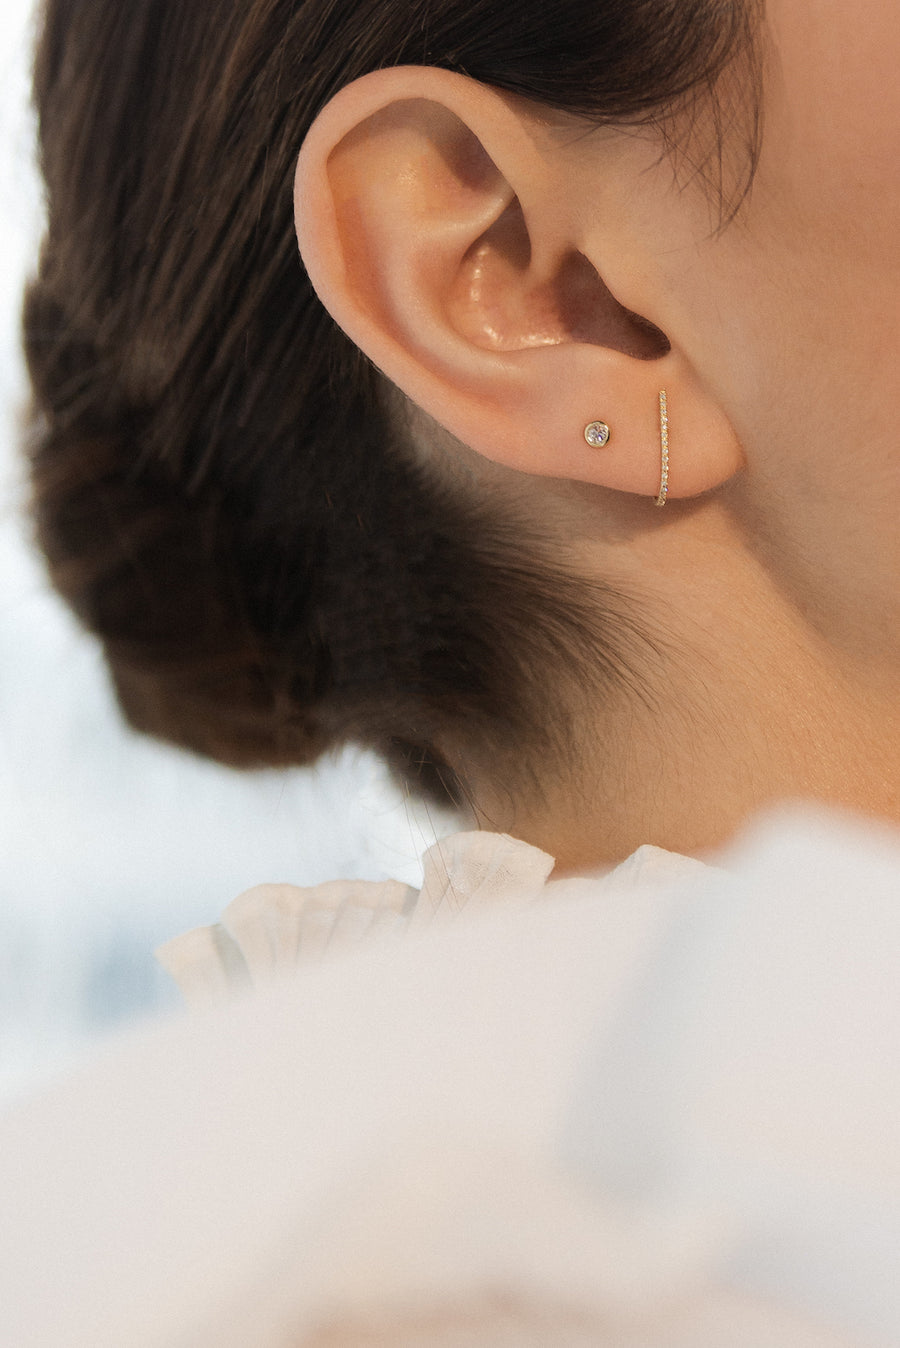 Earring - Snug Diamond